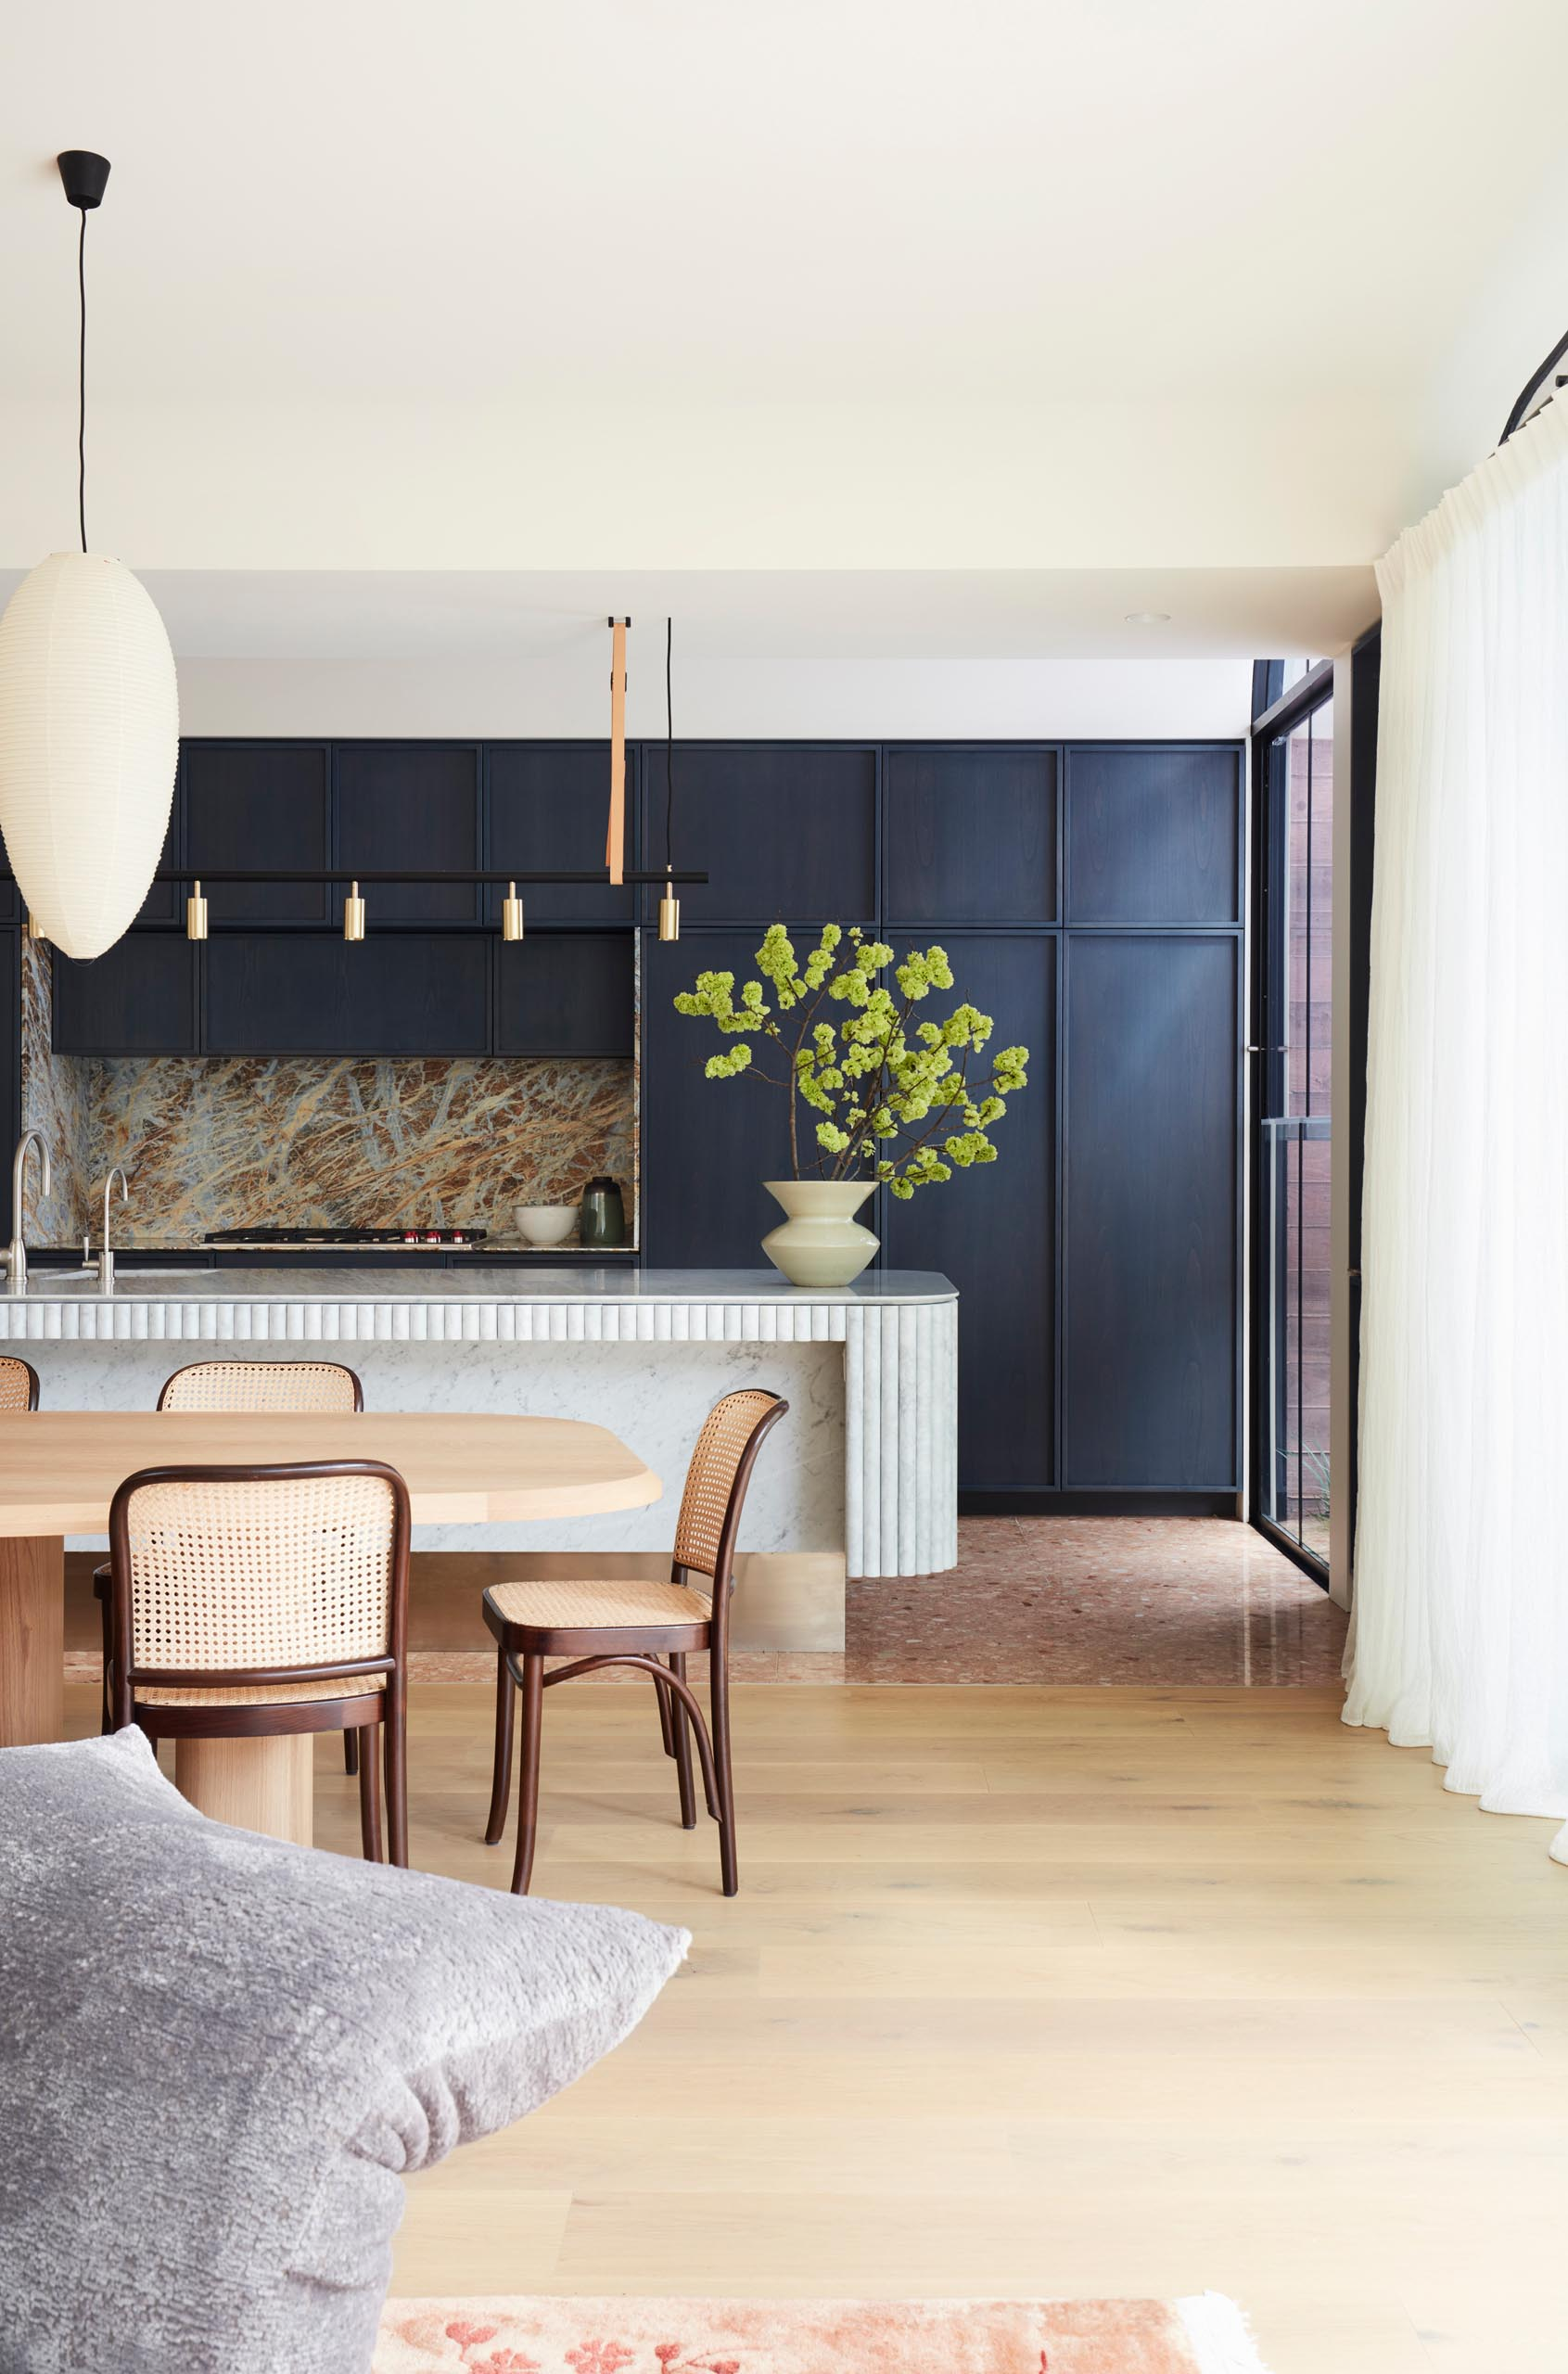 A modern kitchen with dark hardware free cabinets, and a curved island.